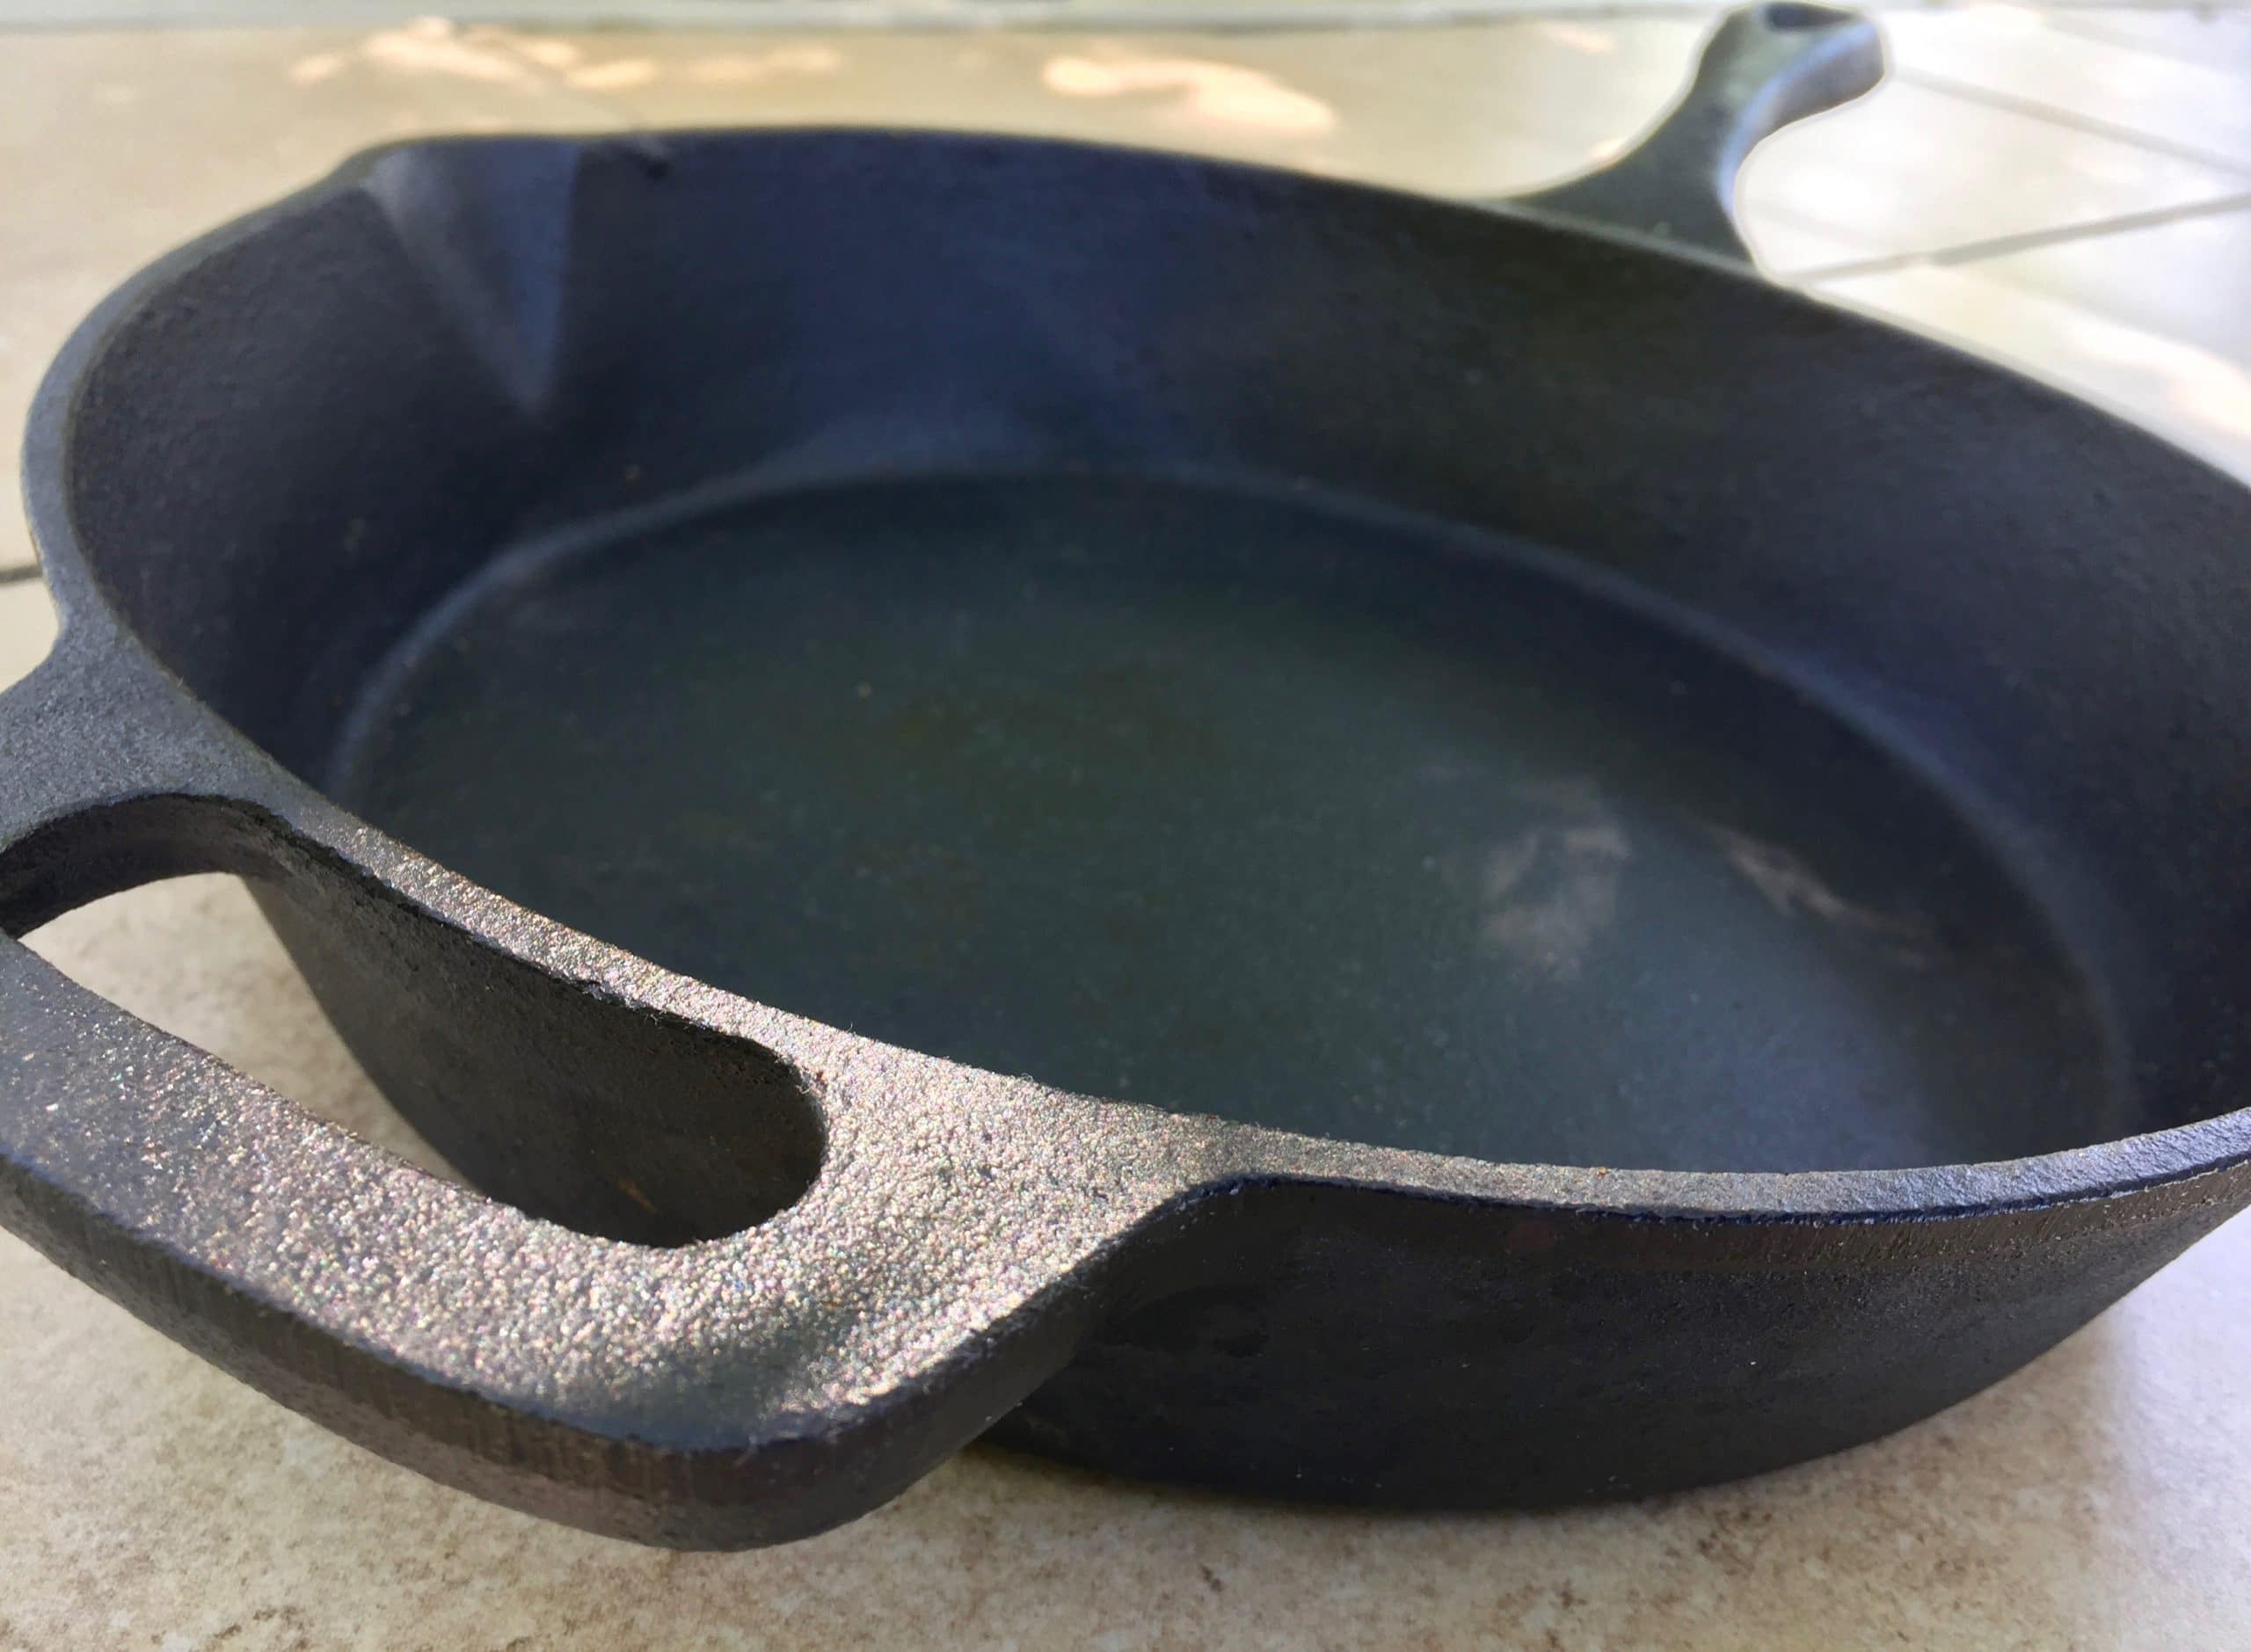 Seasoning cast iron skillet